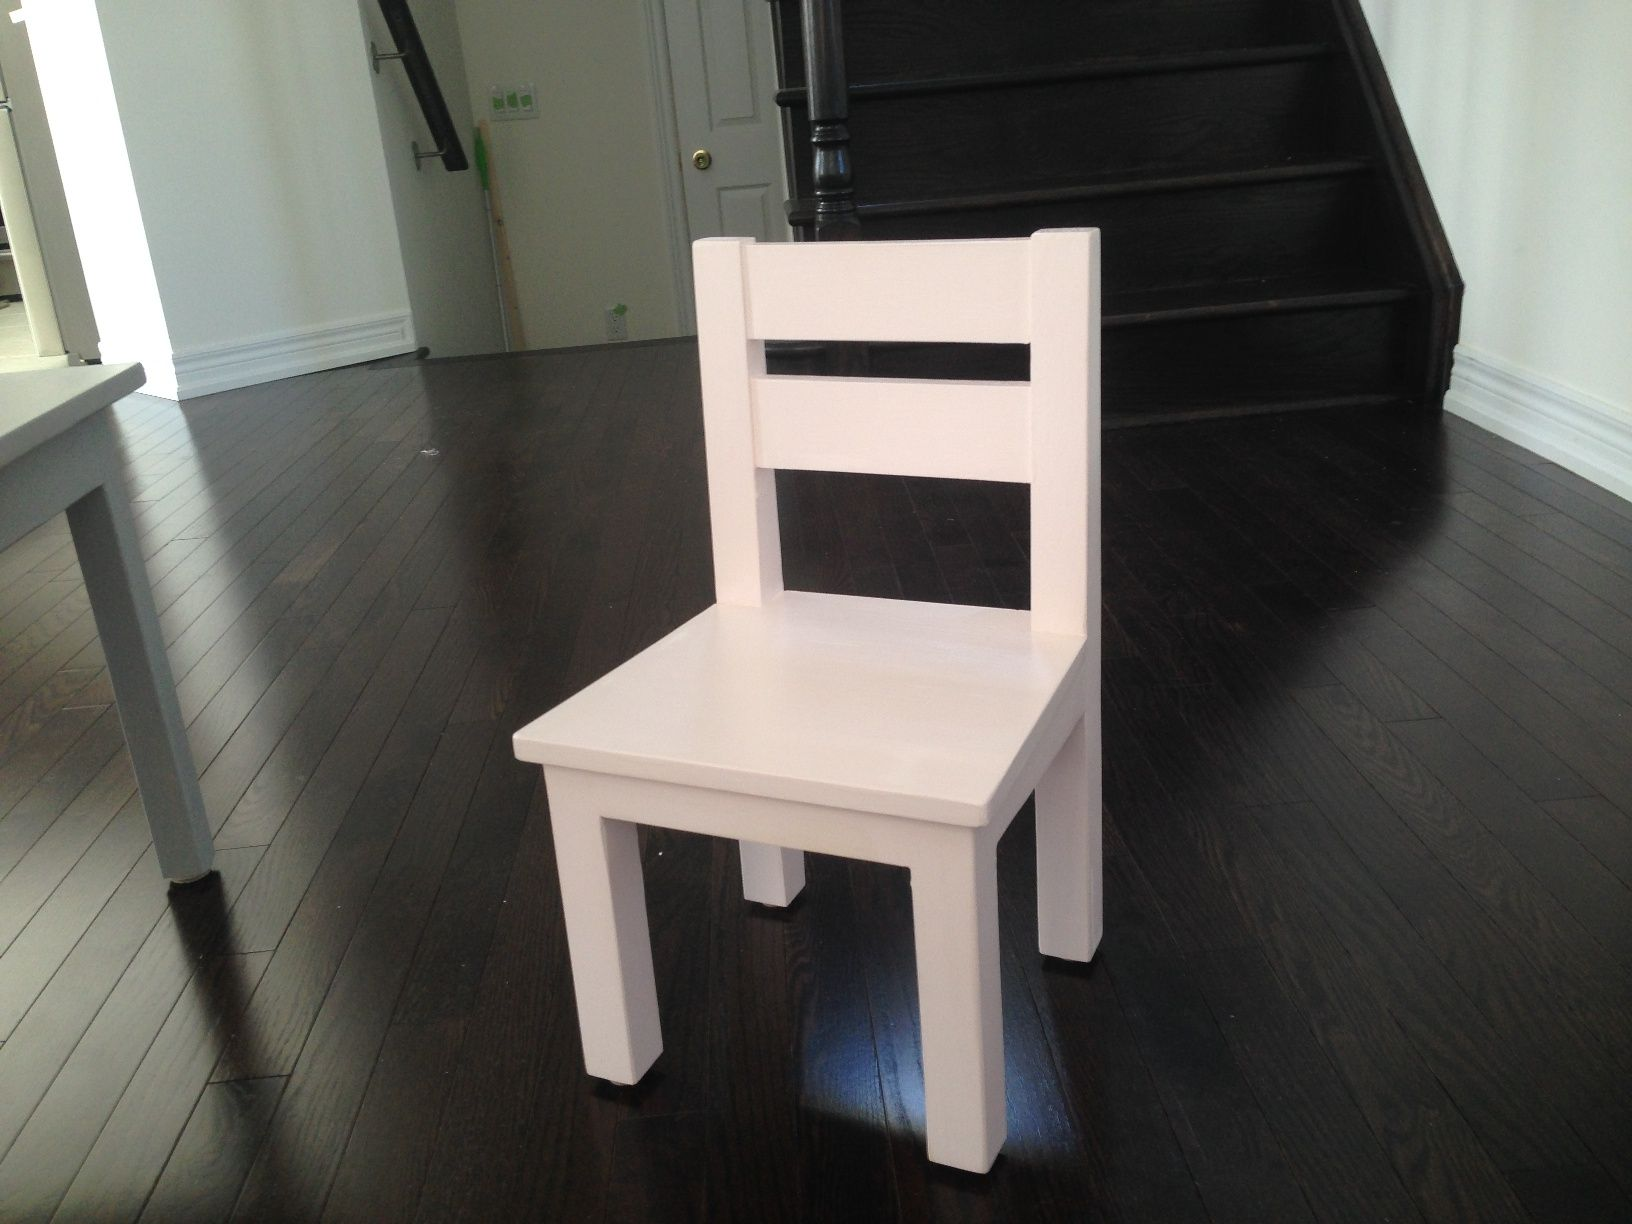 Ana White | Build A Kidu0027s Chair | Free And Easy DIY Project And Furniture  Plans